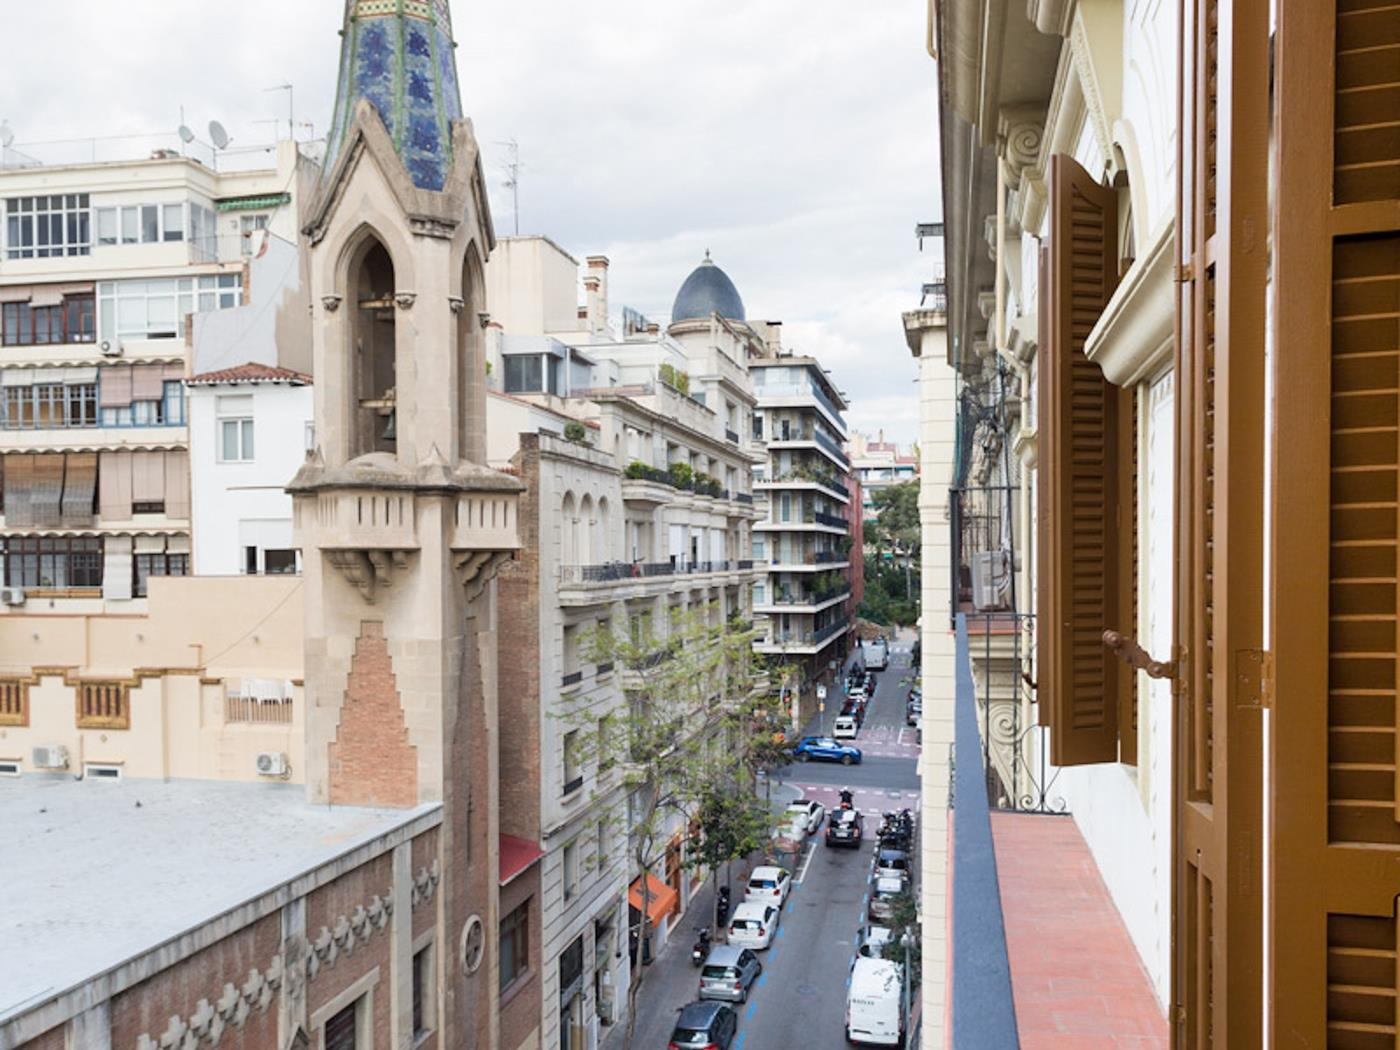 Stunning one bedroom apartment in amazing location with private balcony - My Space Barcelona Apartments